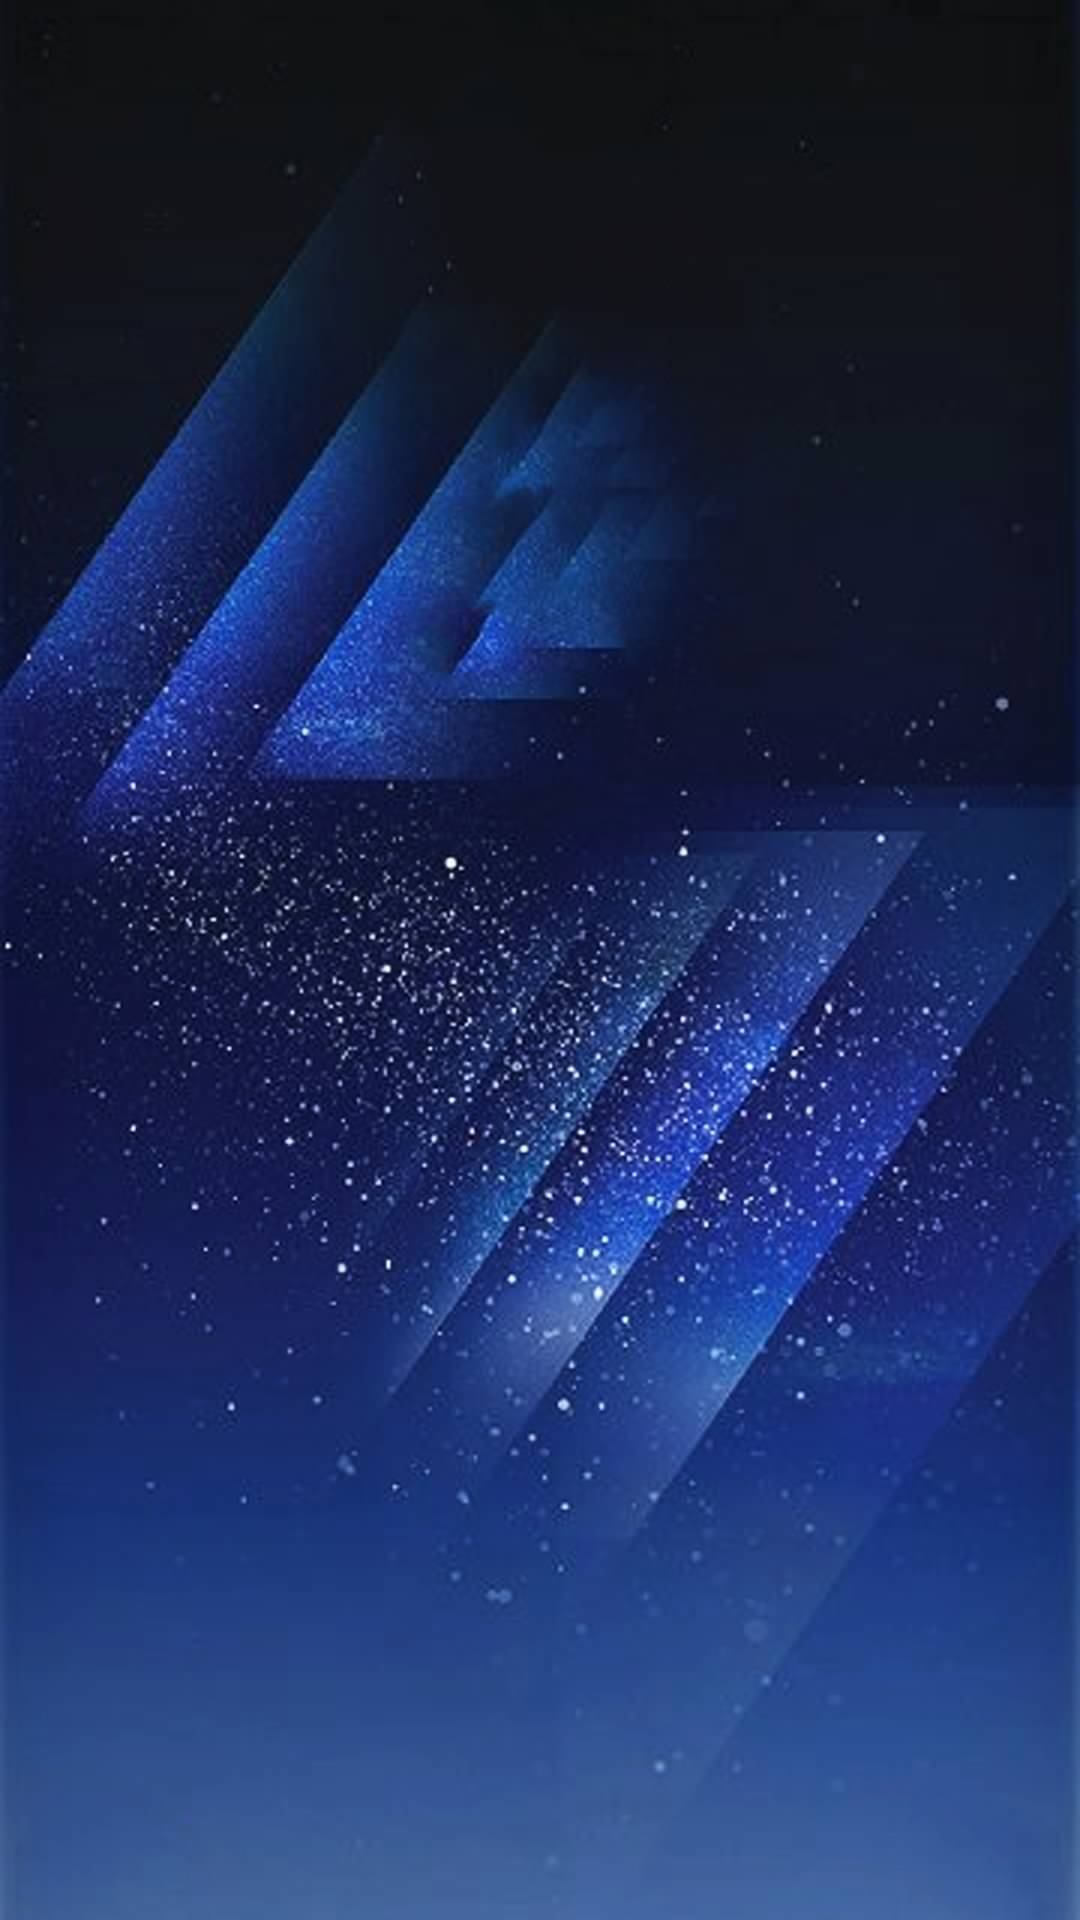 48+] Samsung S8 Wallpaper Lock Screen